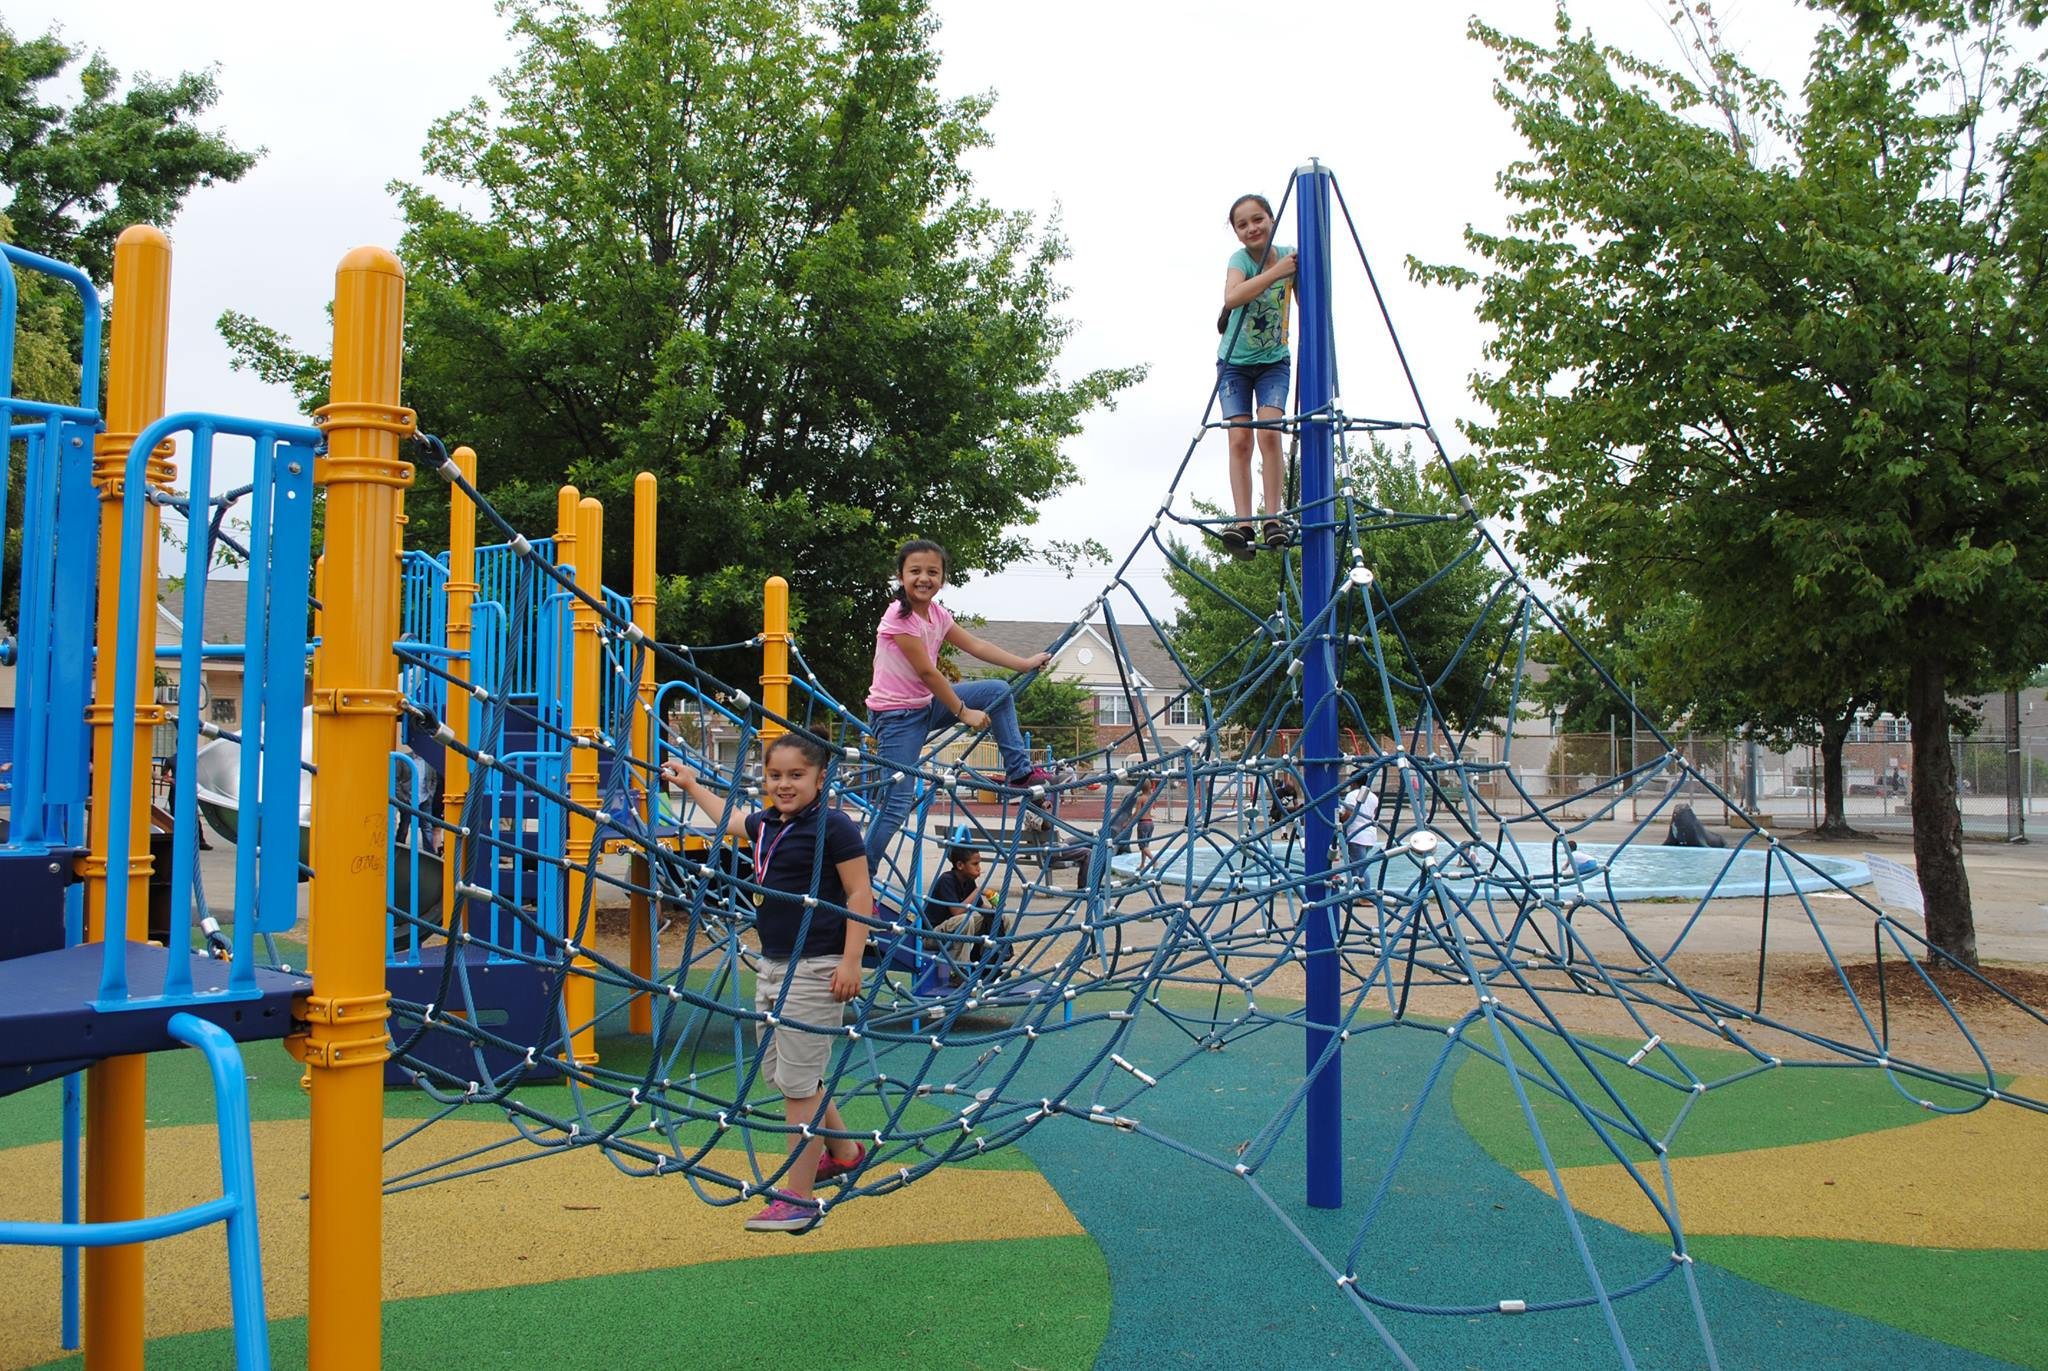 The city recently renovated Piccoli Playground to meet new standards for inclusive play. (Philadelphia Parks and Rec)